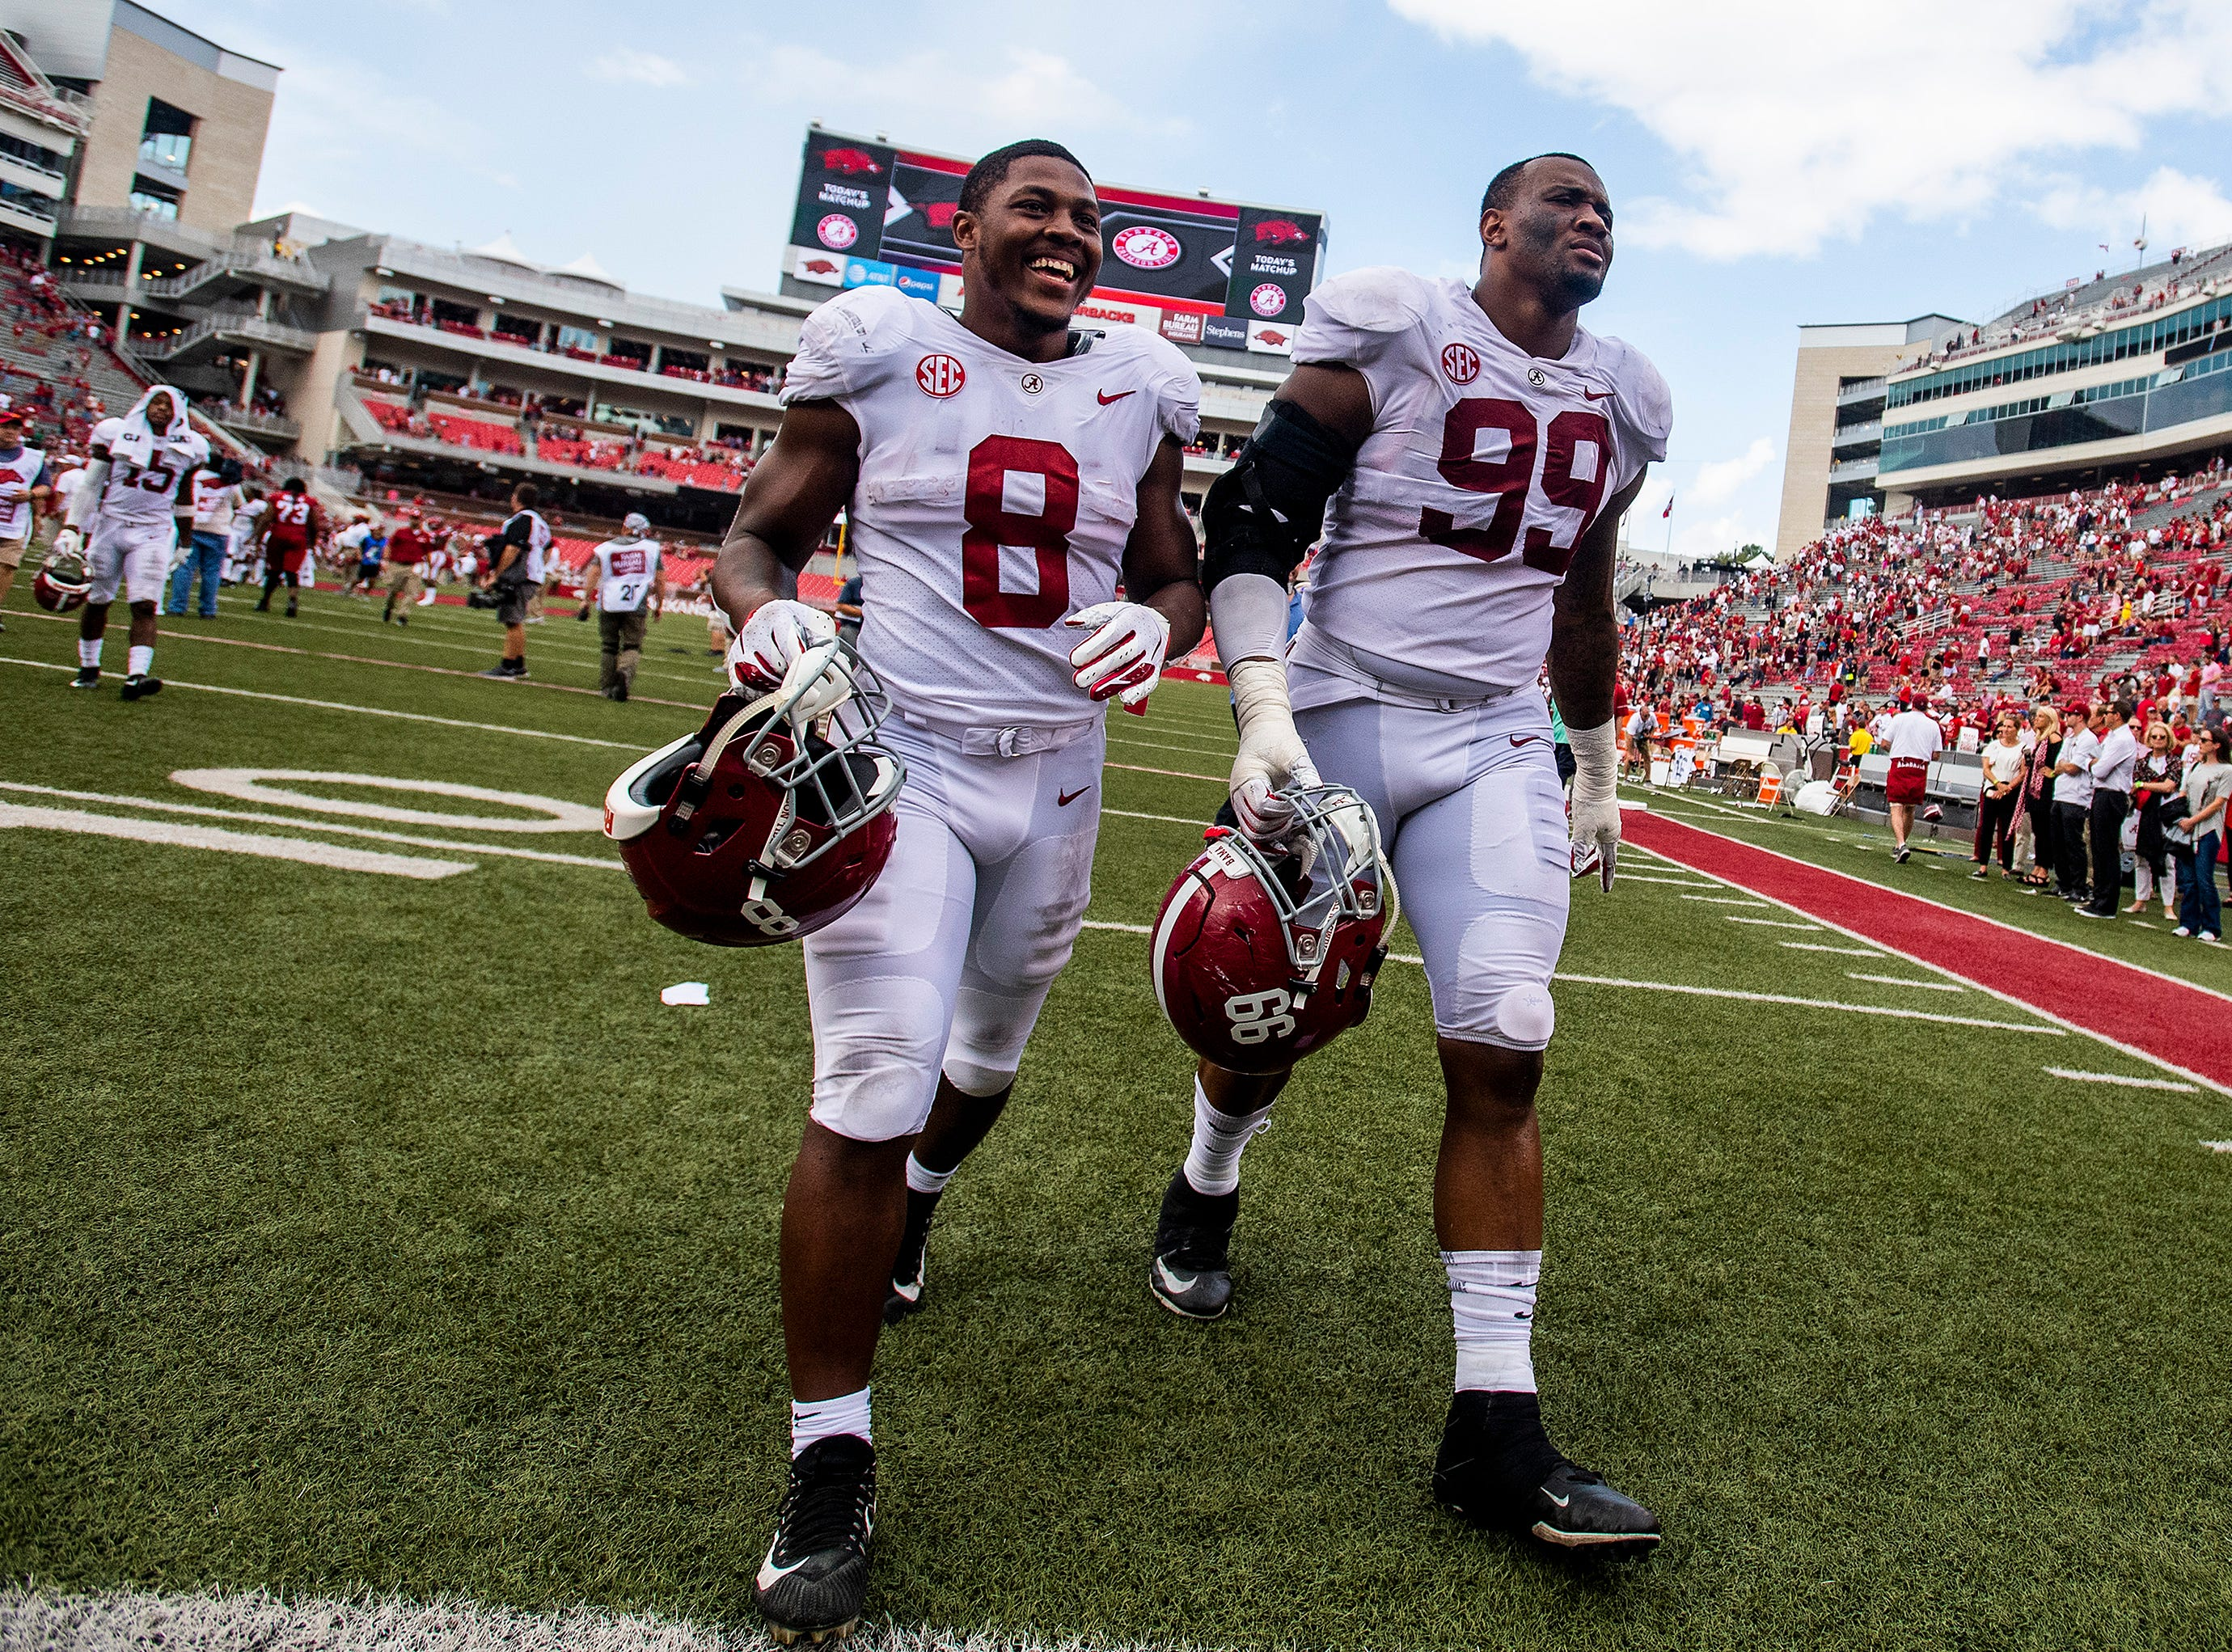 Alabama running back Josh Jacobs (8) and defensive lineman Raekwon Davis (99) walk off the field after defeating Arkansas during second half action in Fayetteville, Ark., on Saturday October 6, 2018.